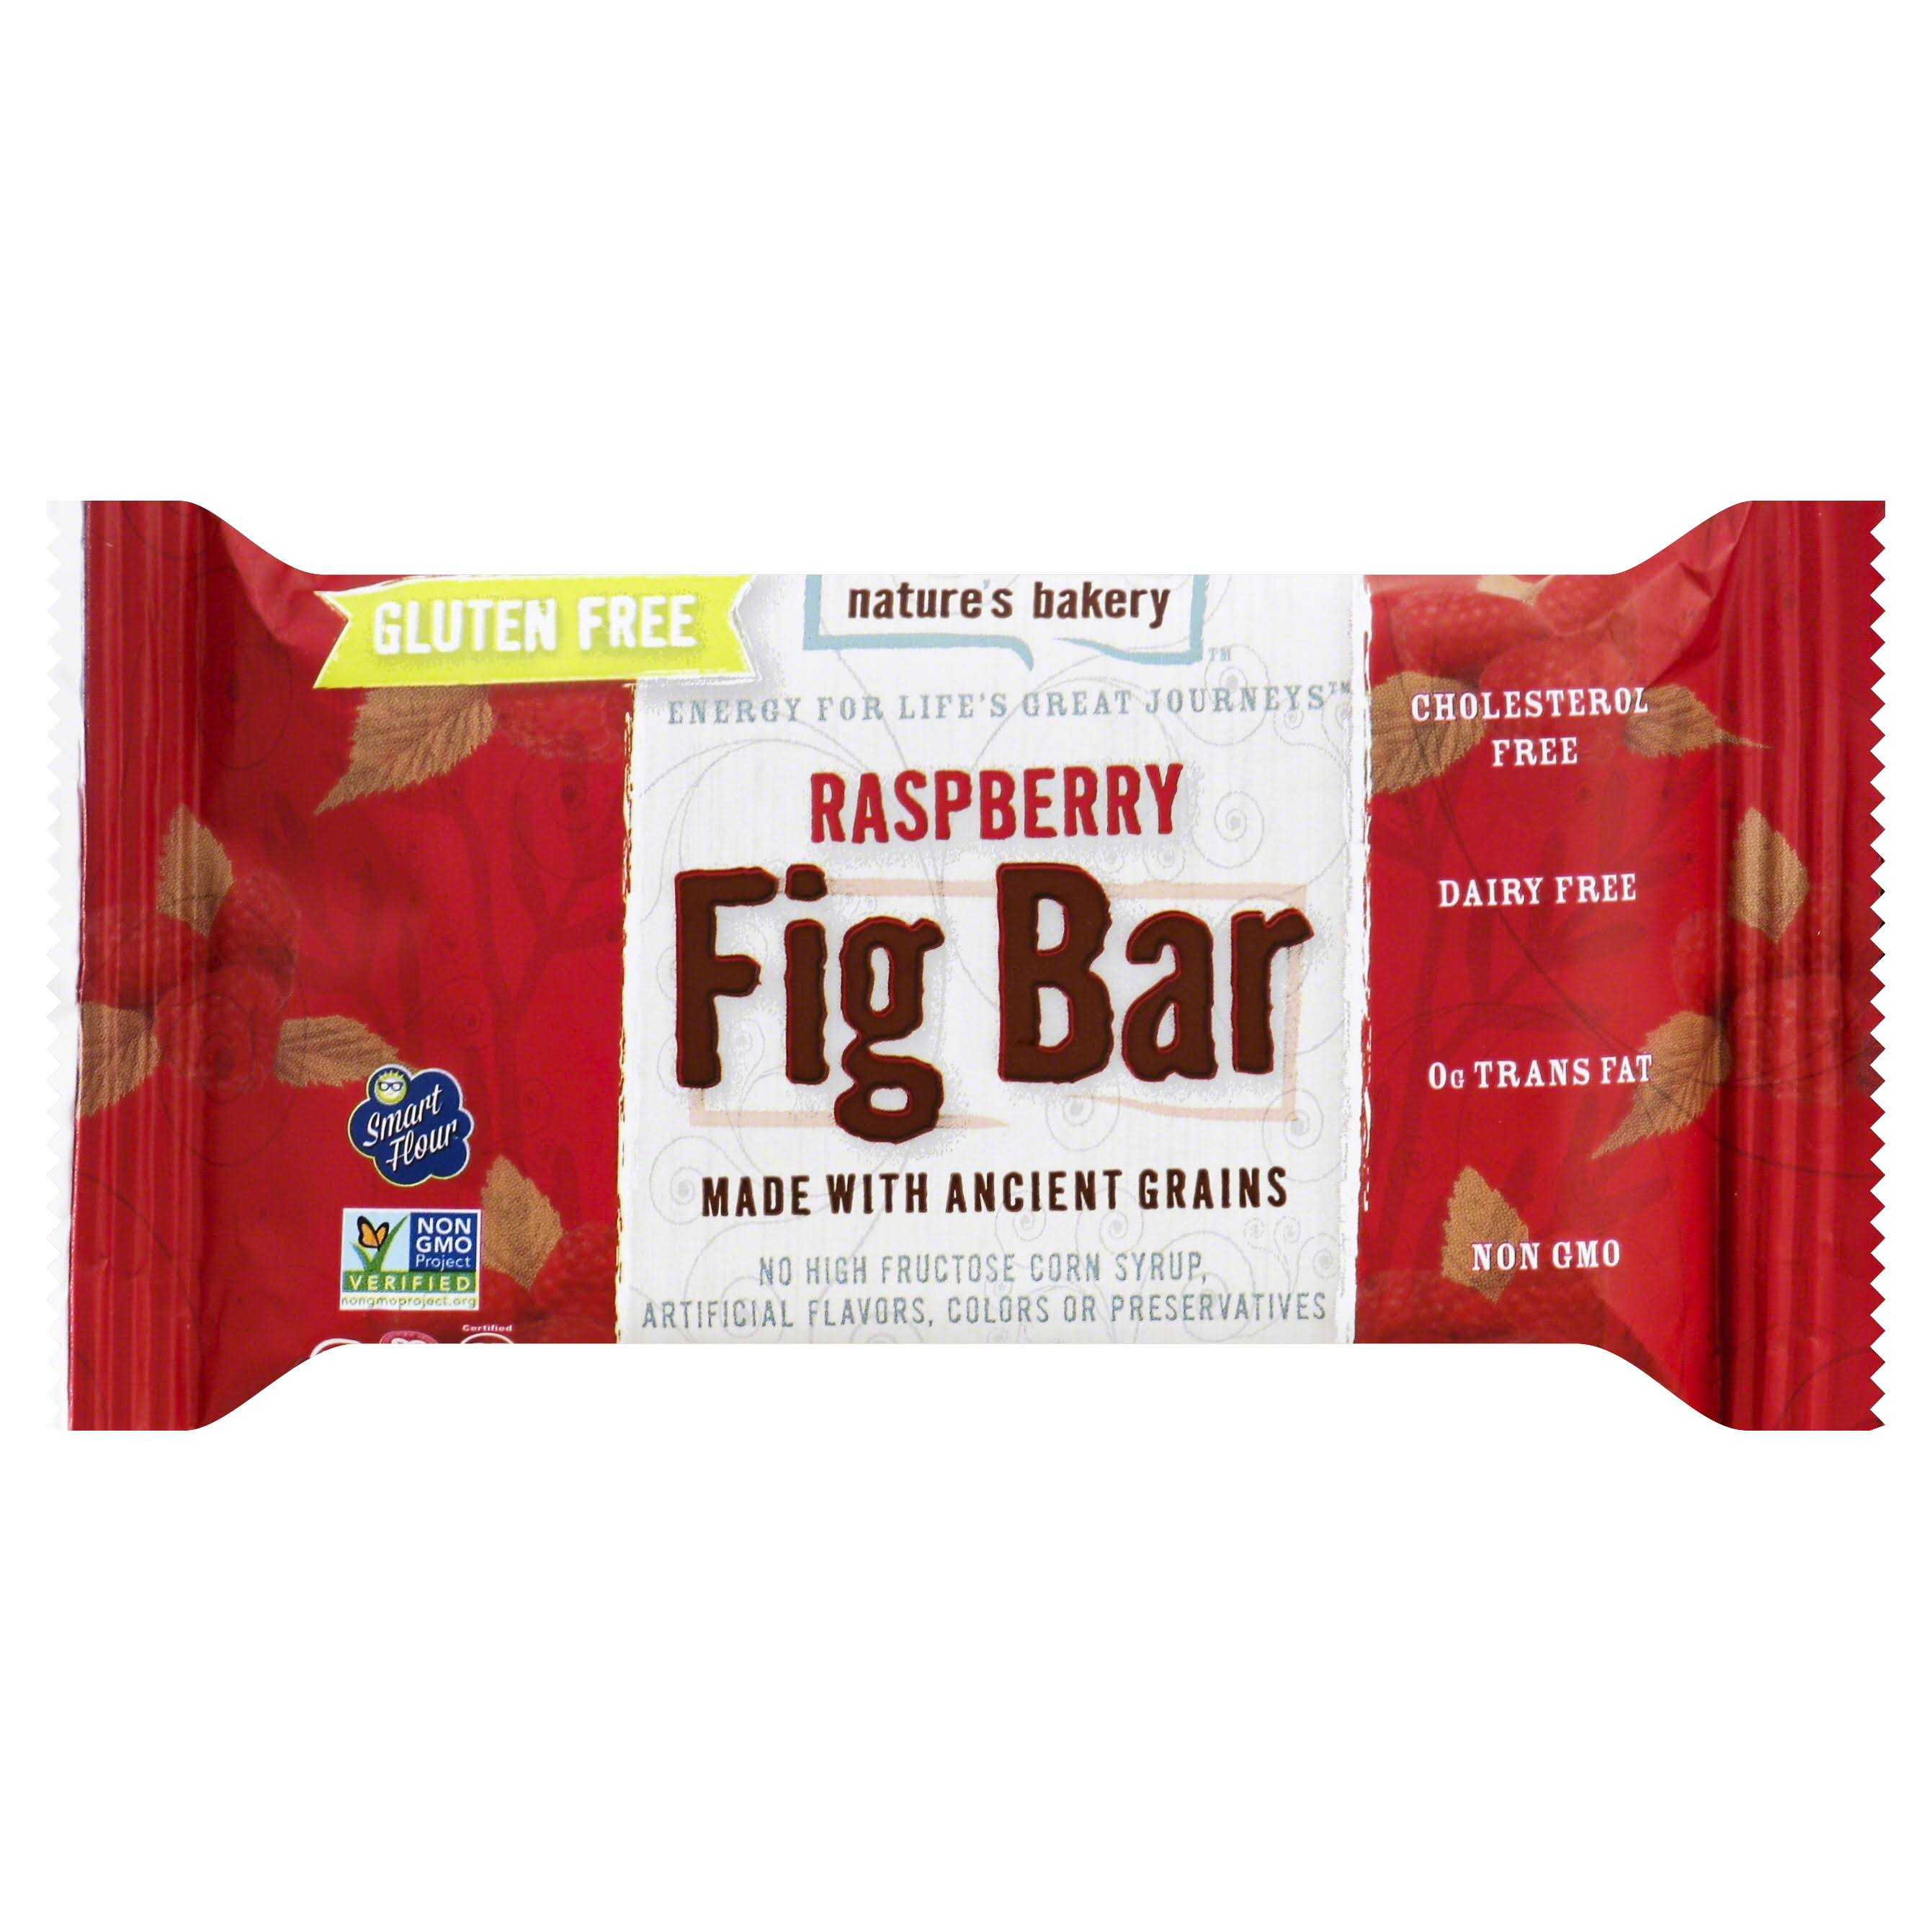 Nature's Bakery Gluten Free Fig Bar - Raspberry, 60ml